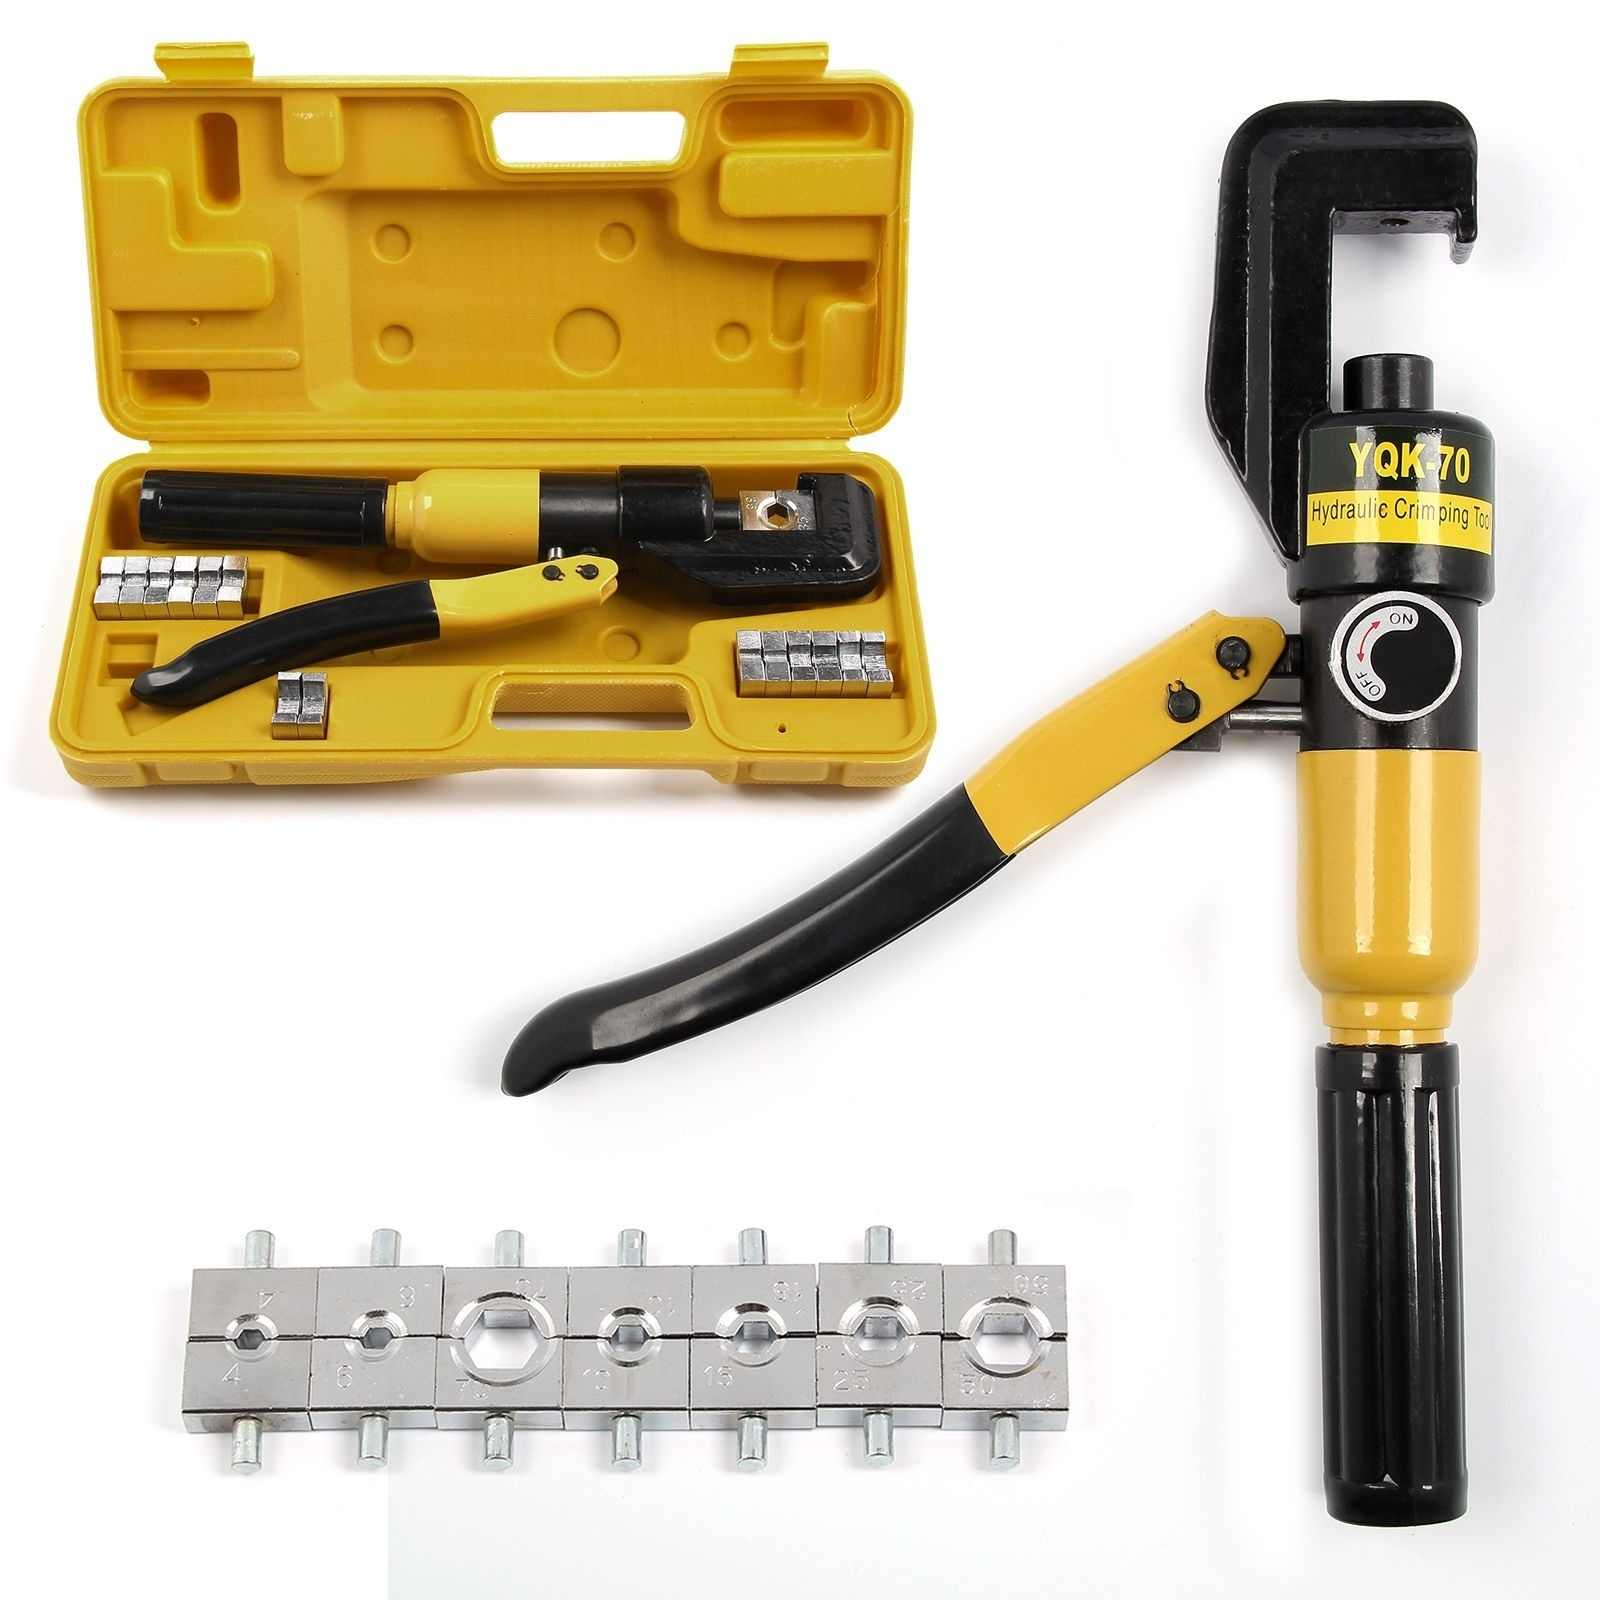 6T Hydraulic Crimper Tool Kit Tube Terminals Lugs Battery Wire Crimping Force